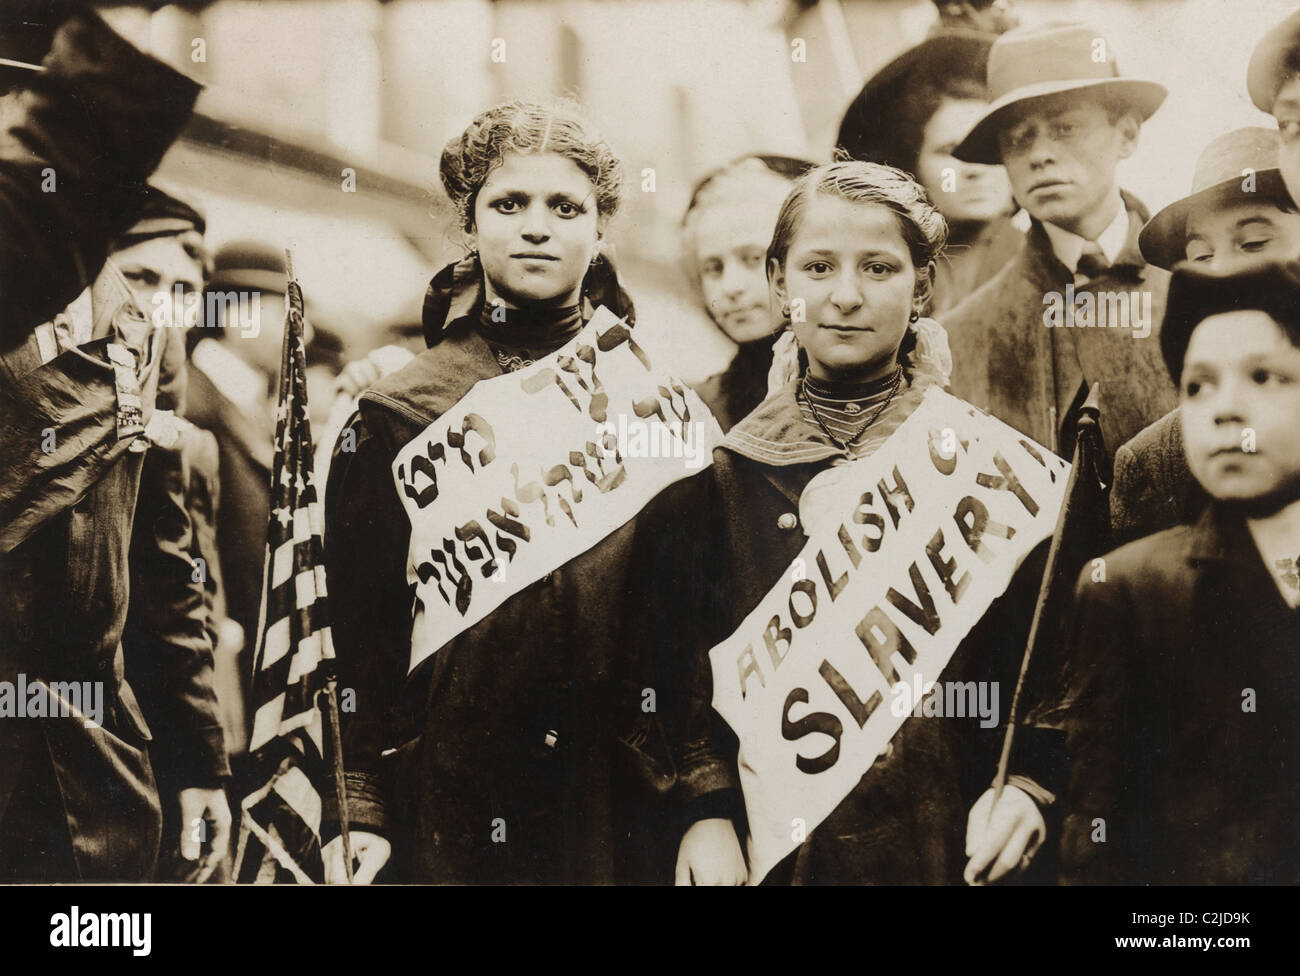 Young Girls Protest Child Labor in New York Rally and carry Yiddish Signs - Stock Image